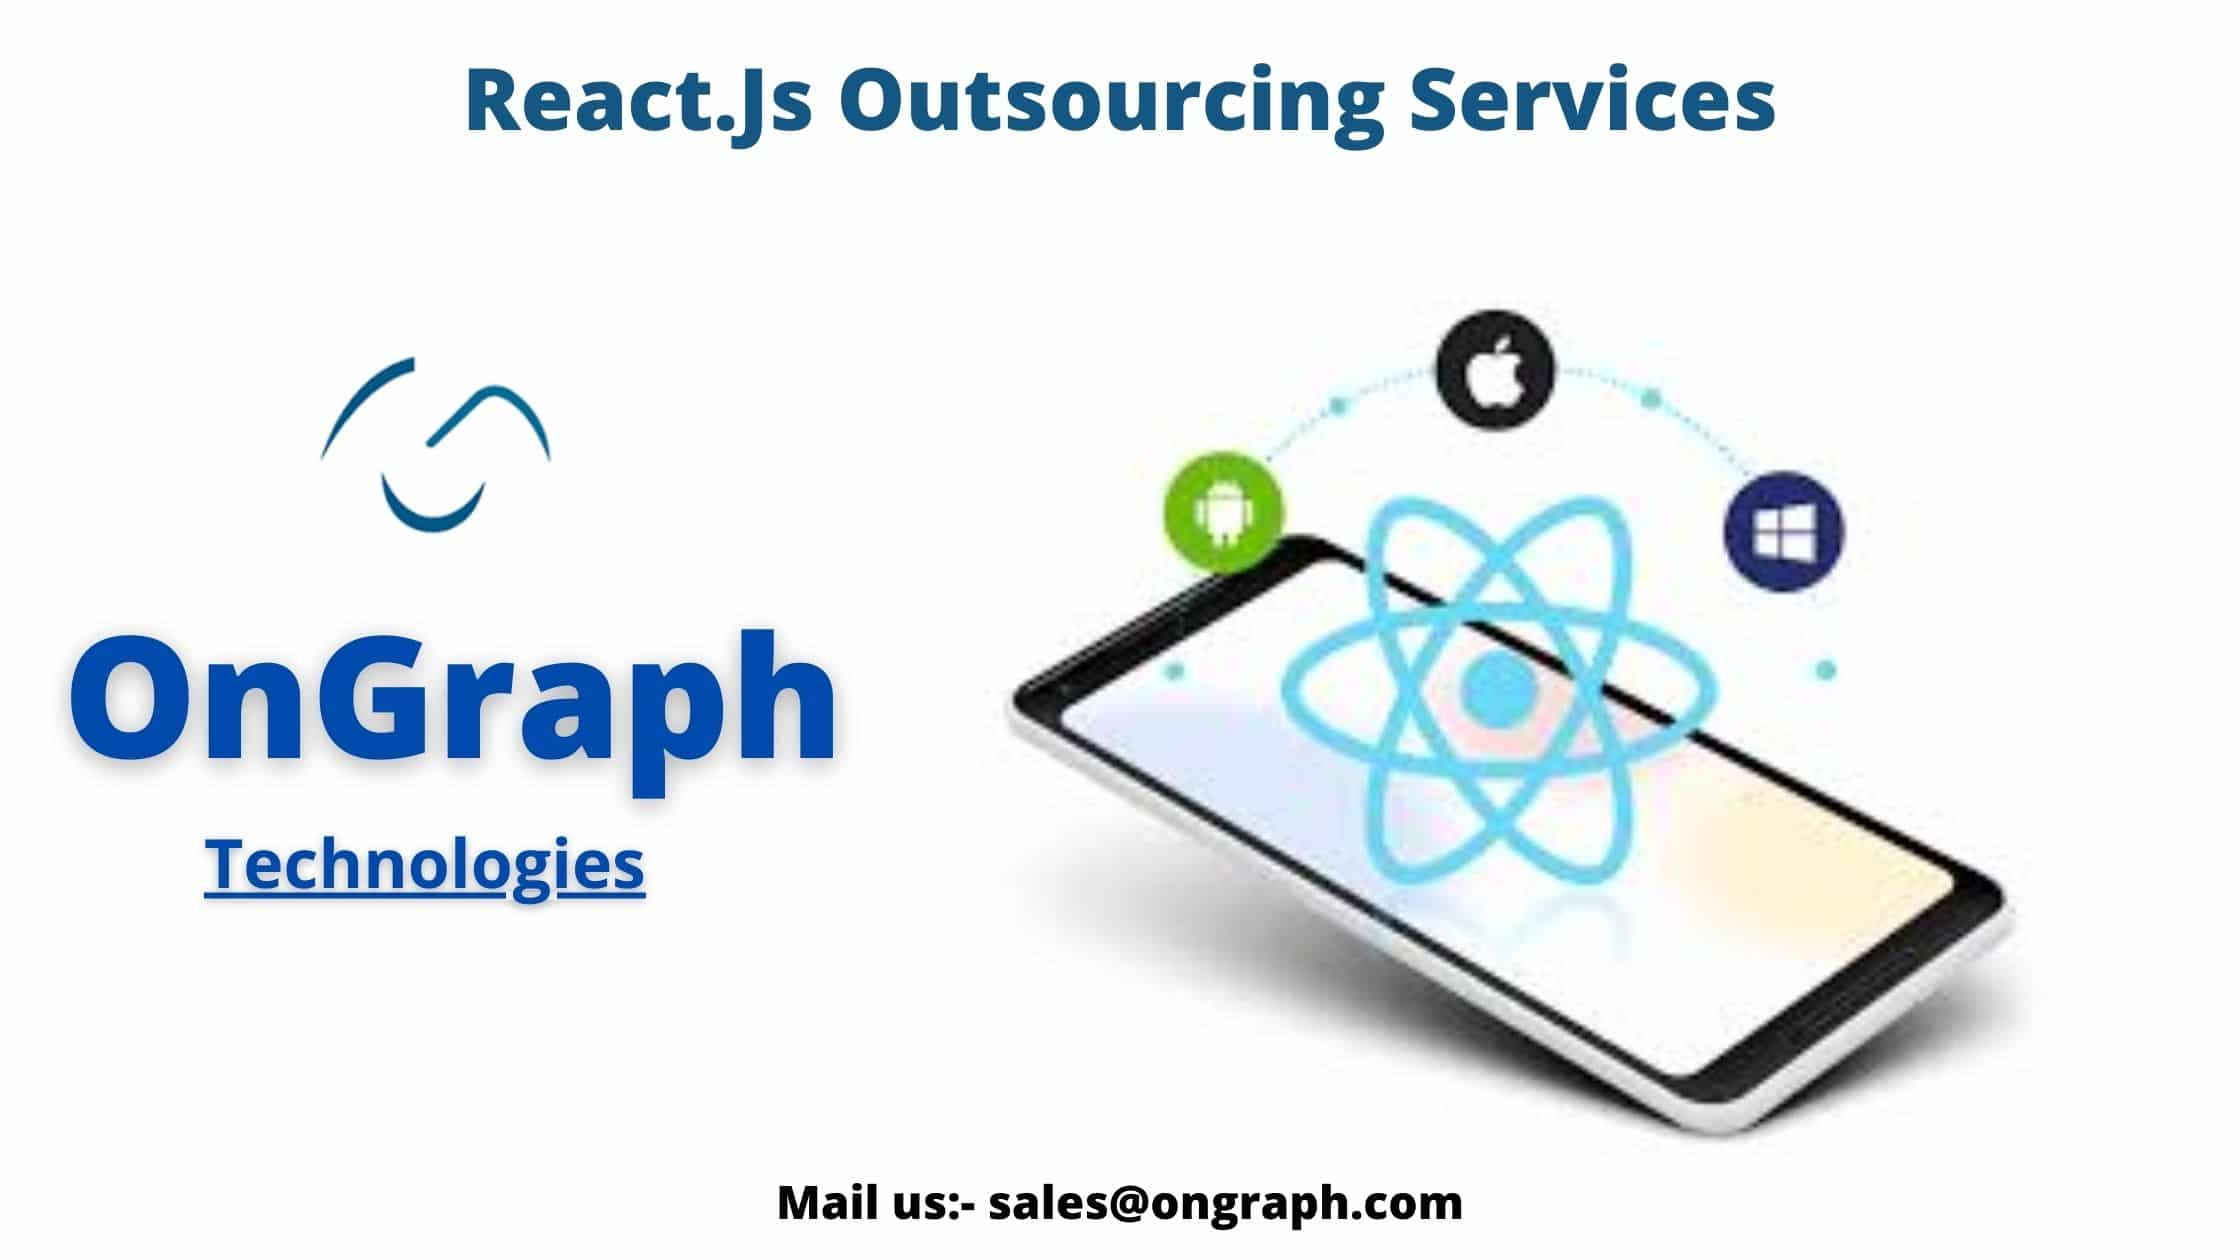 #1React Consulting Services Company